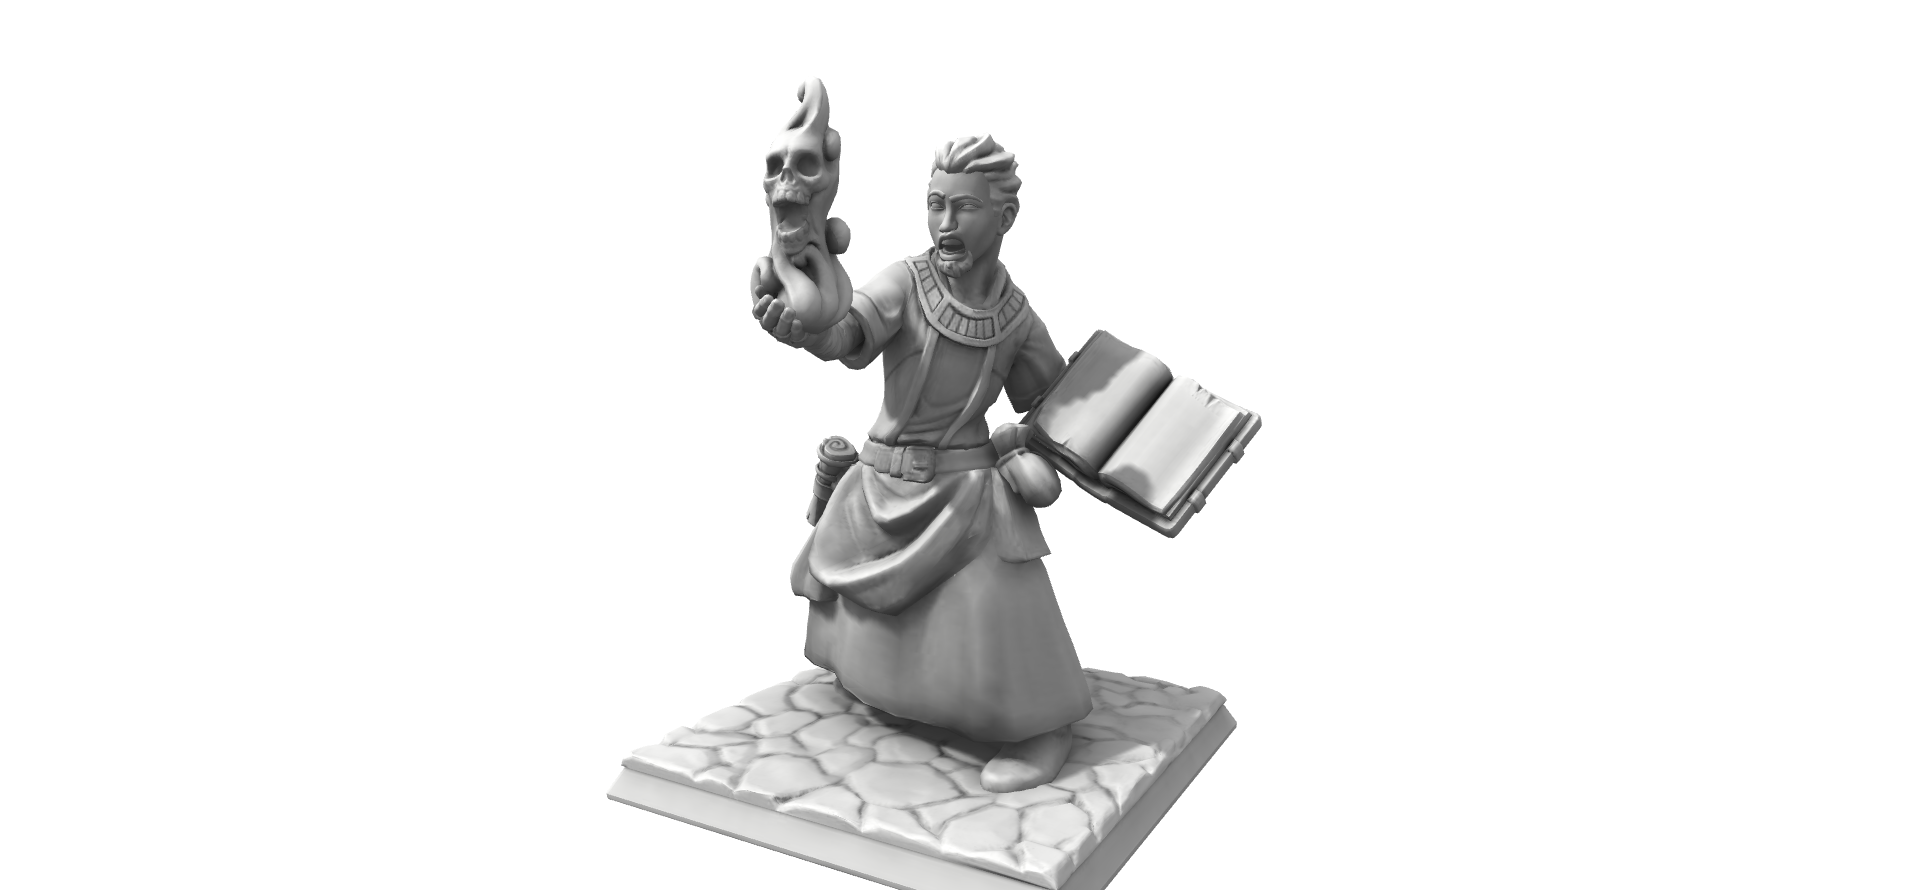 Galerie de Personnages 3D Hero Forge Herofo13